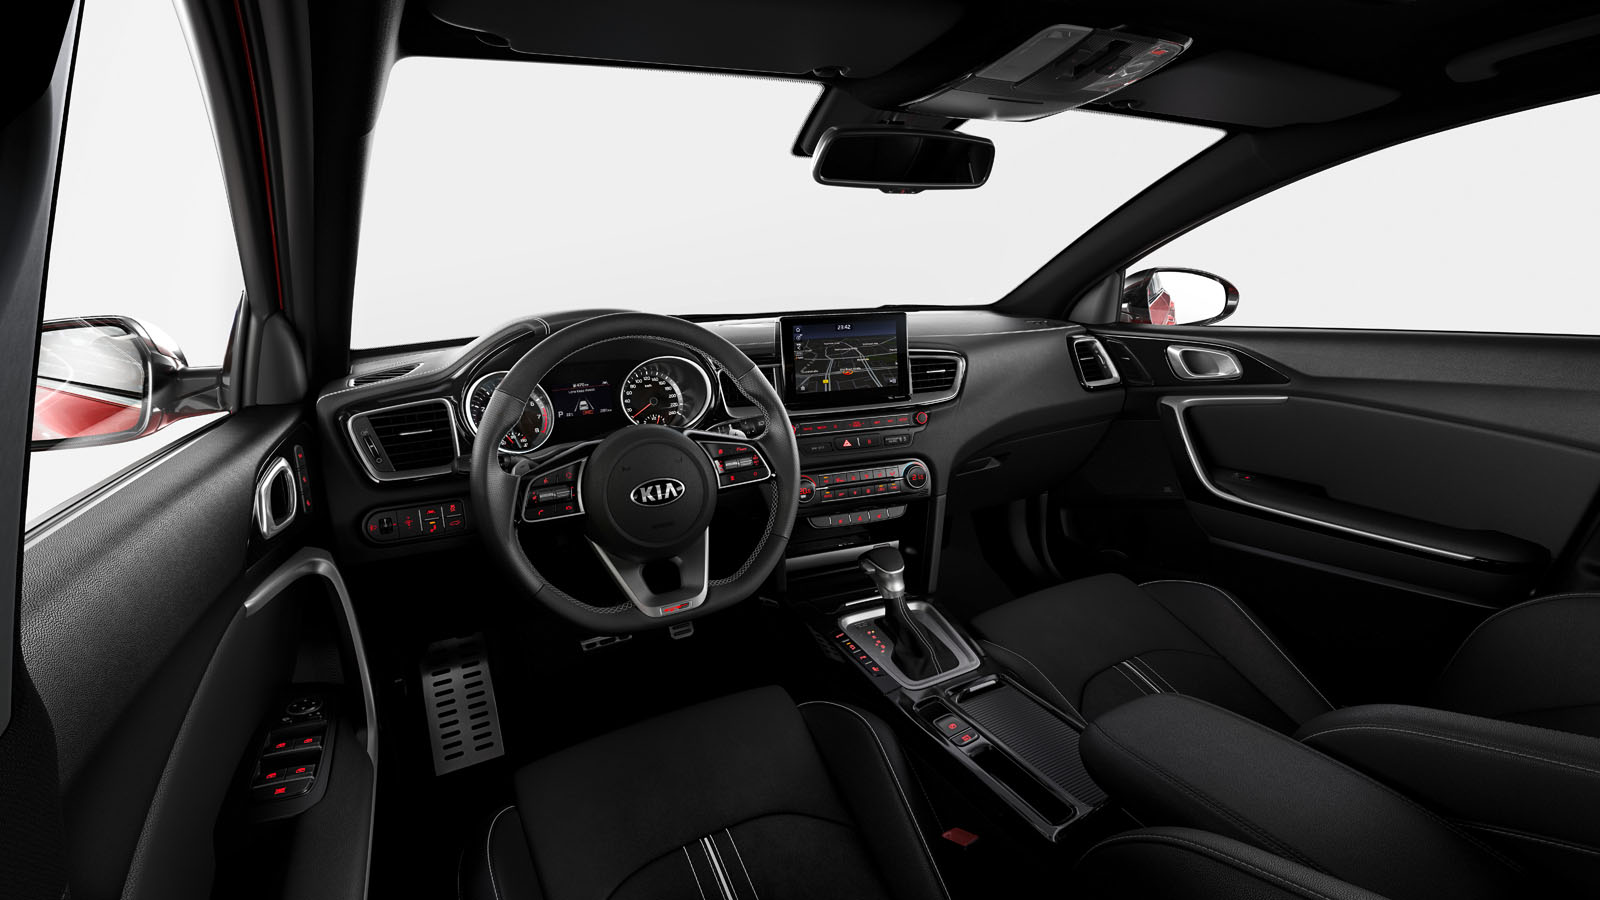 Erster Test Kia Proceed Gt Alles Auto